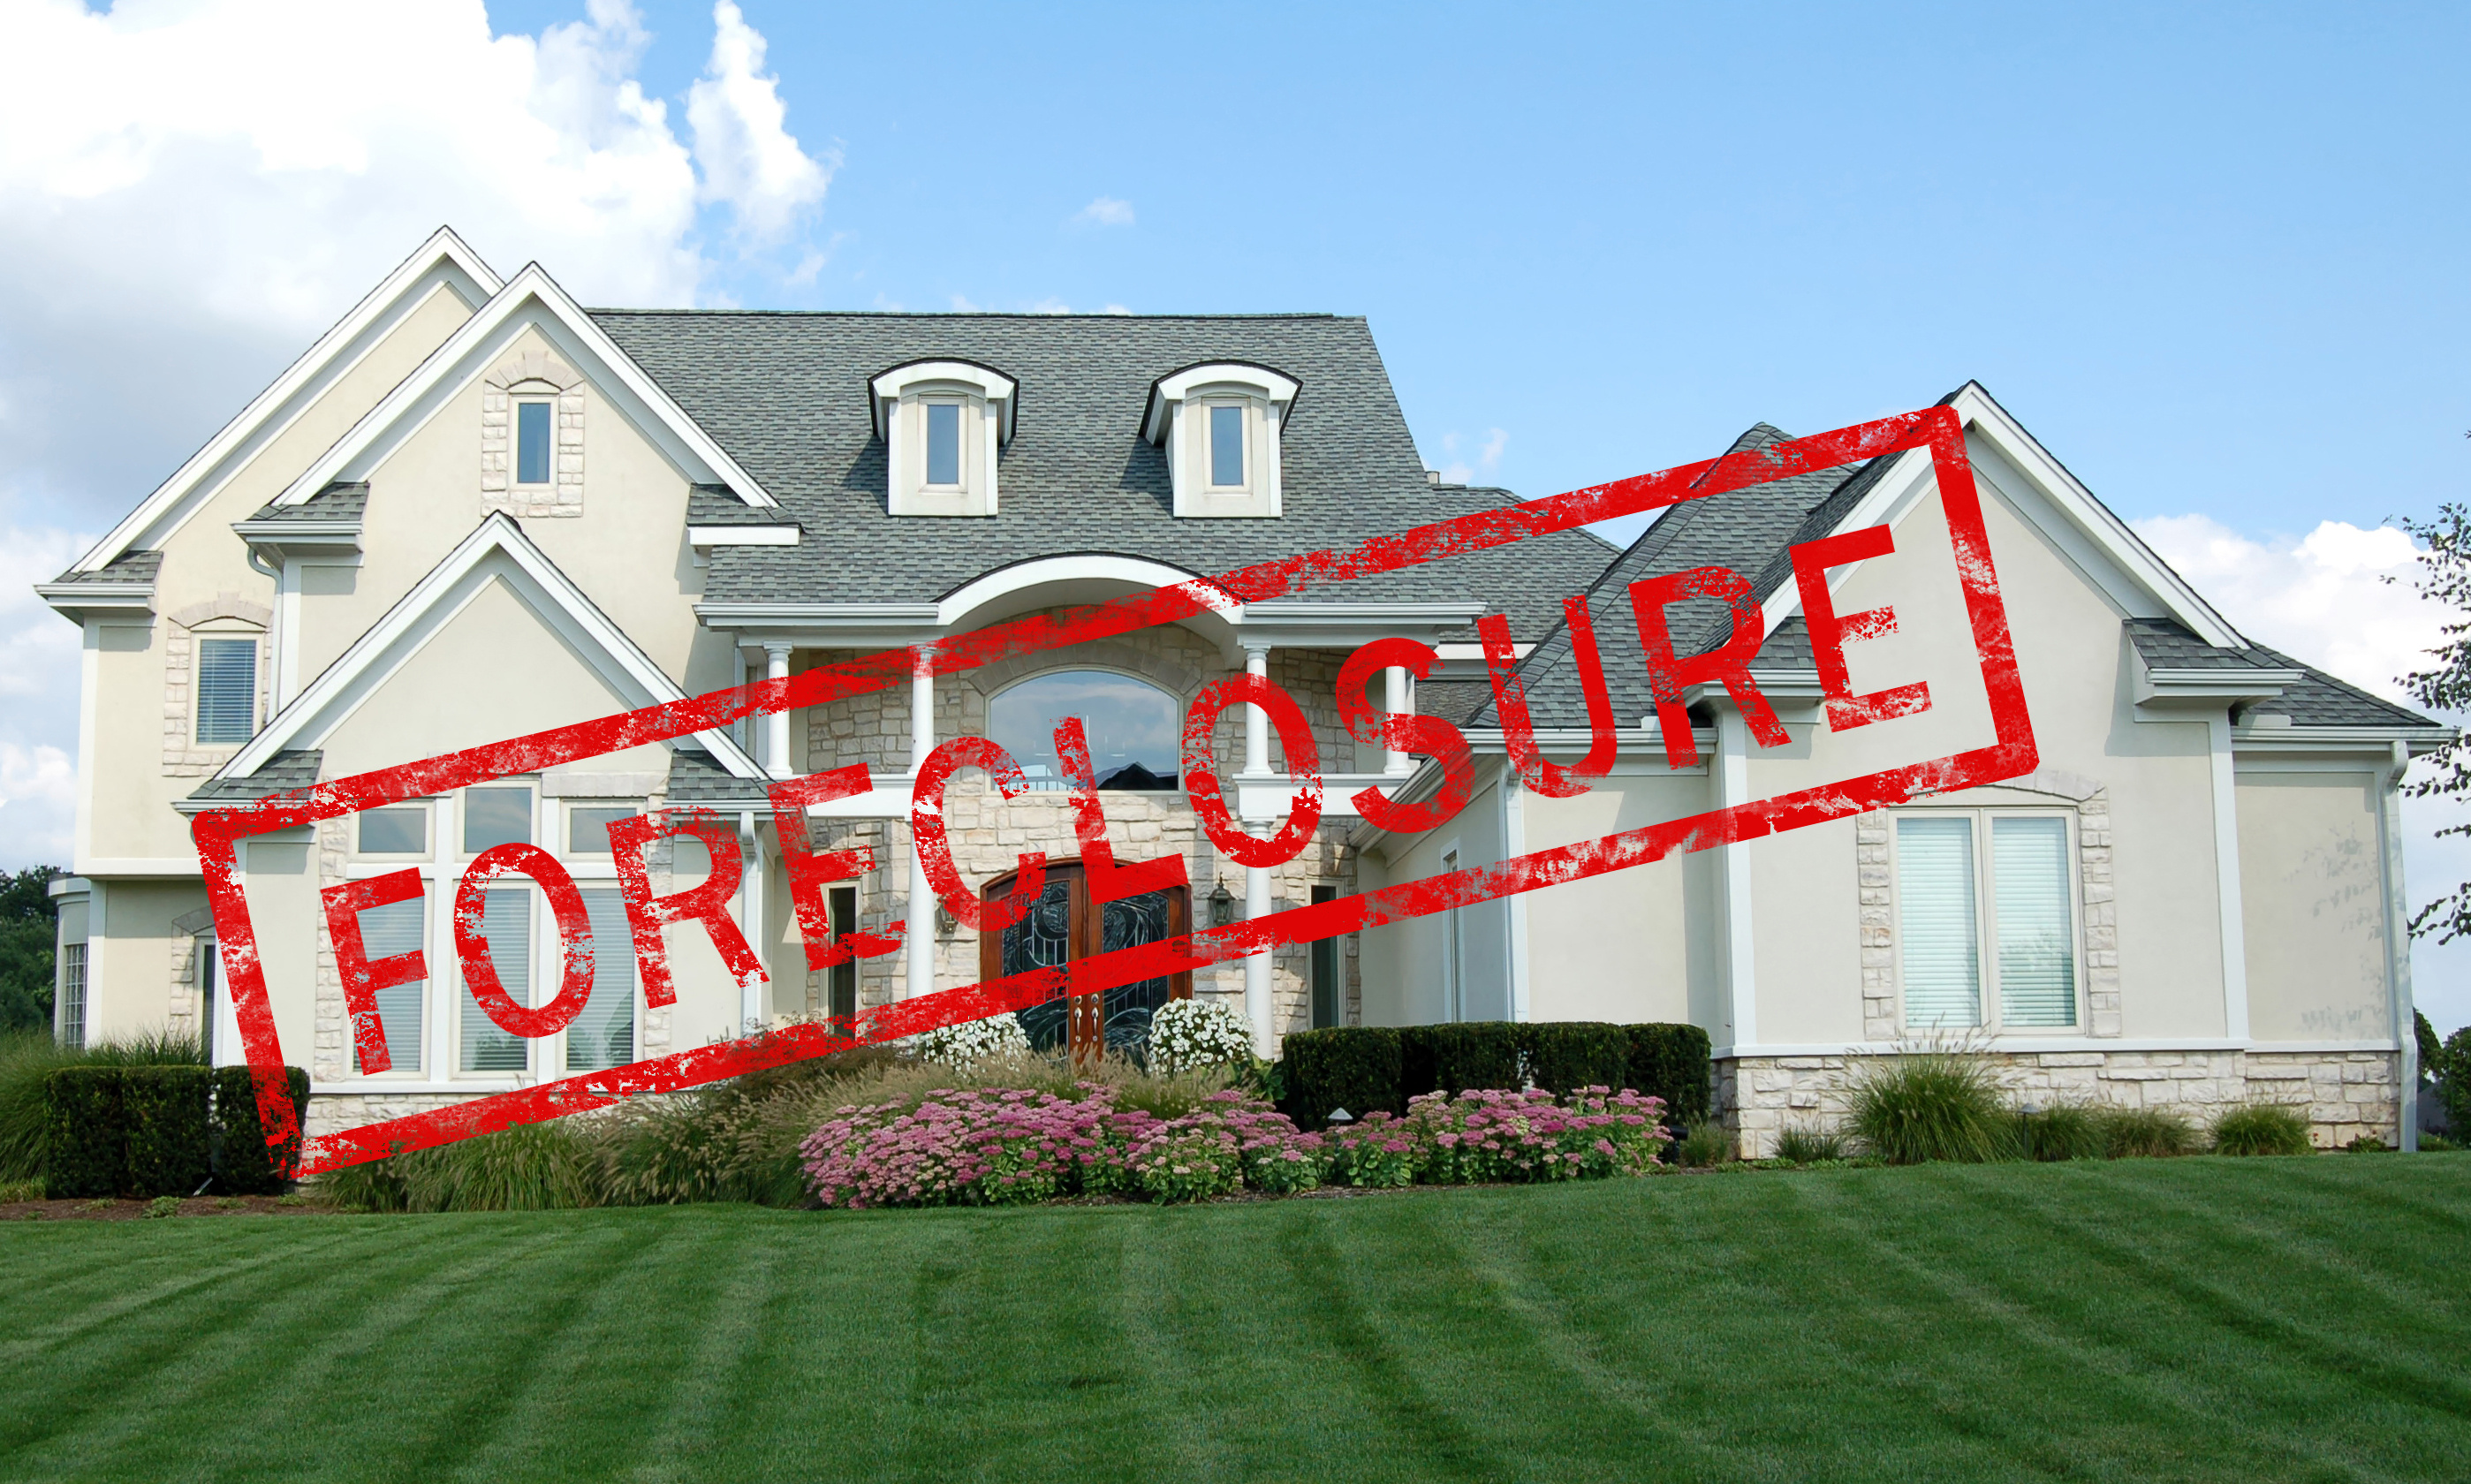 Call Frederick & Company when you need valuations pertaining to Allegheny foreclosures